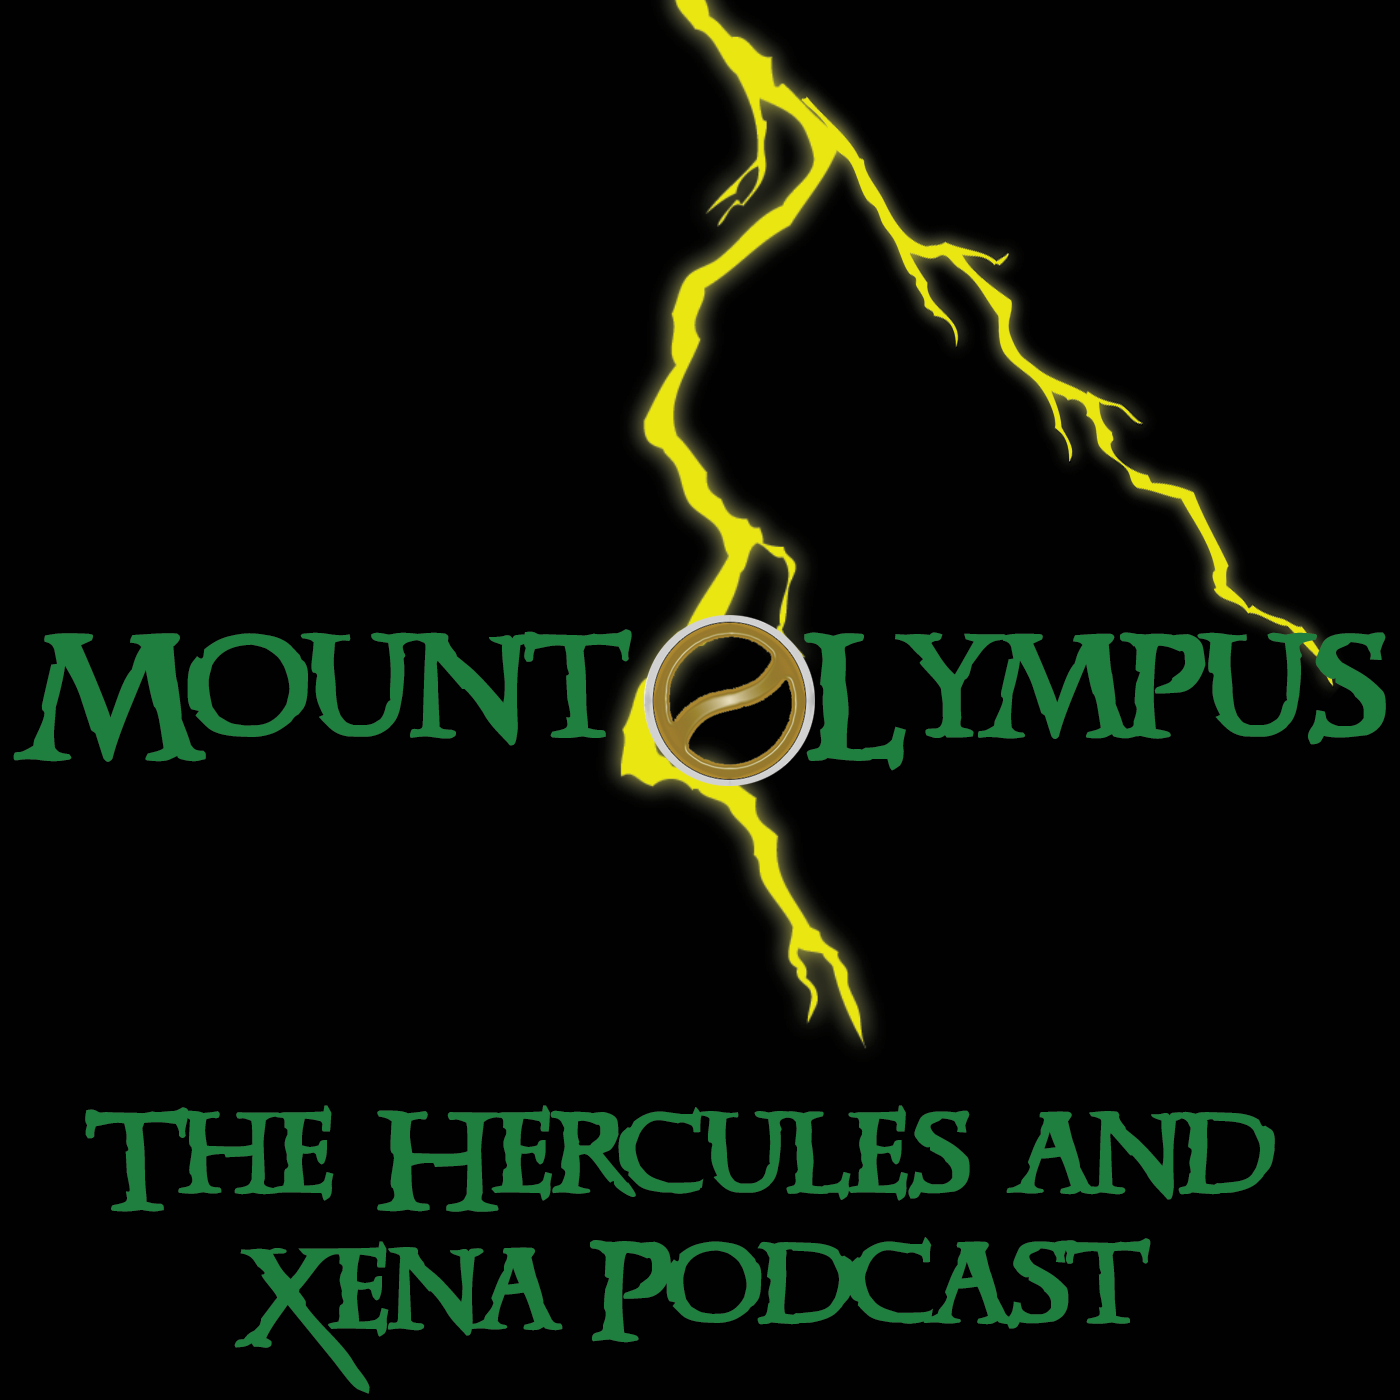 Mount Olympus - The Hercules and Xena Podcast show art